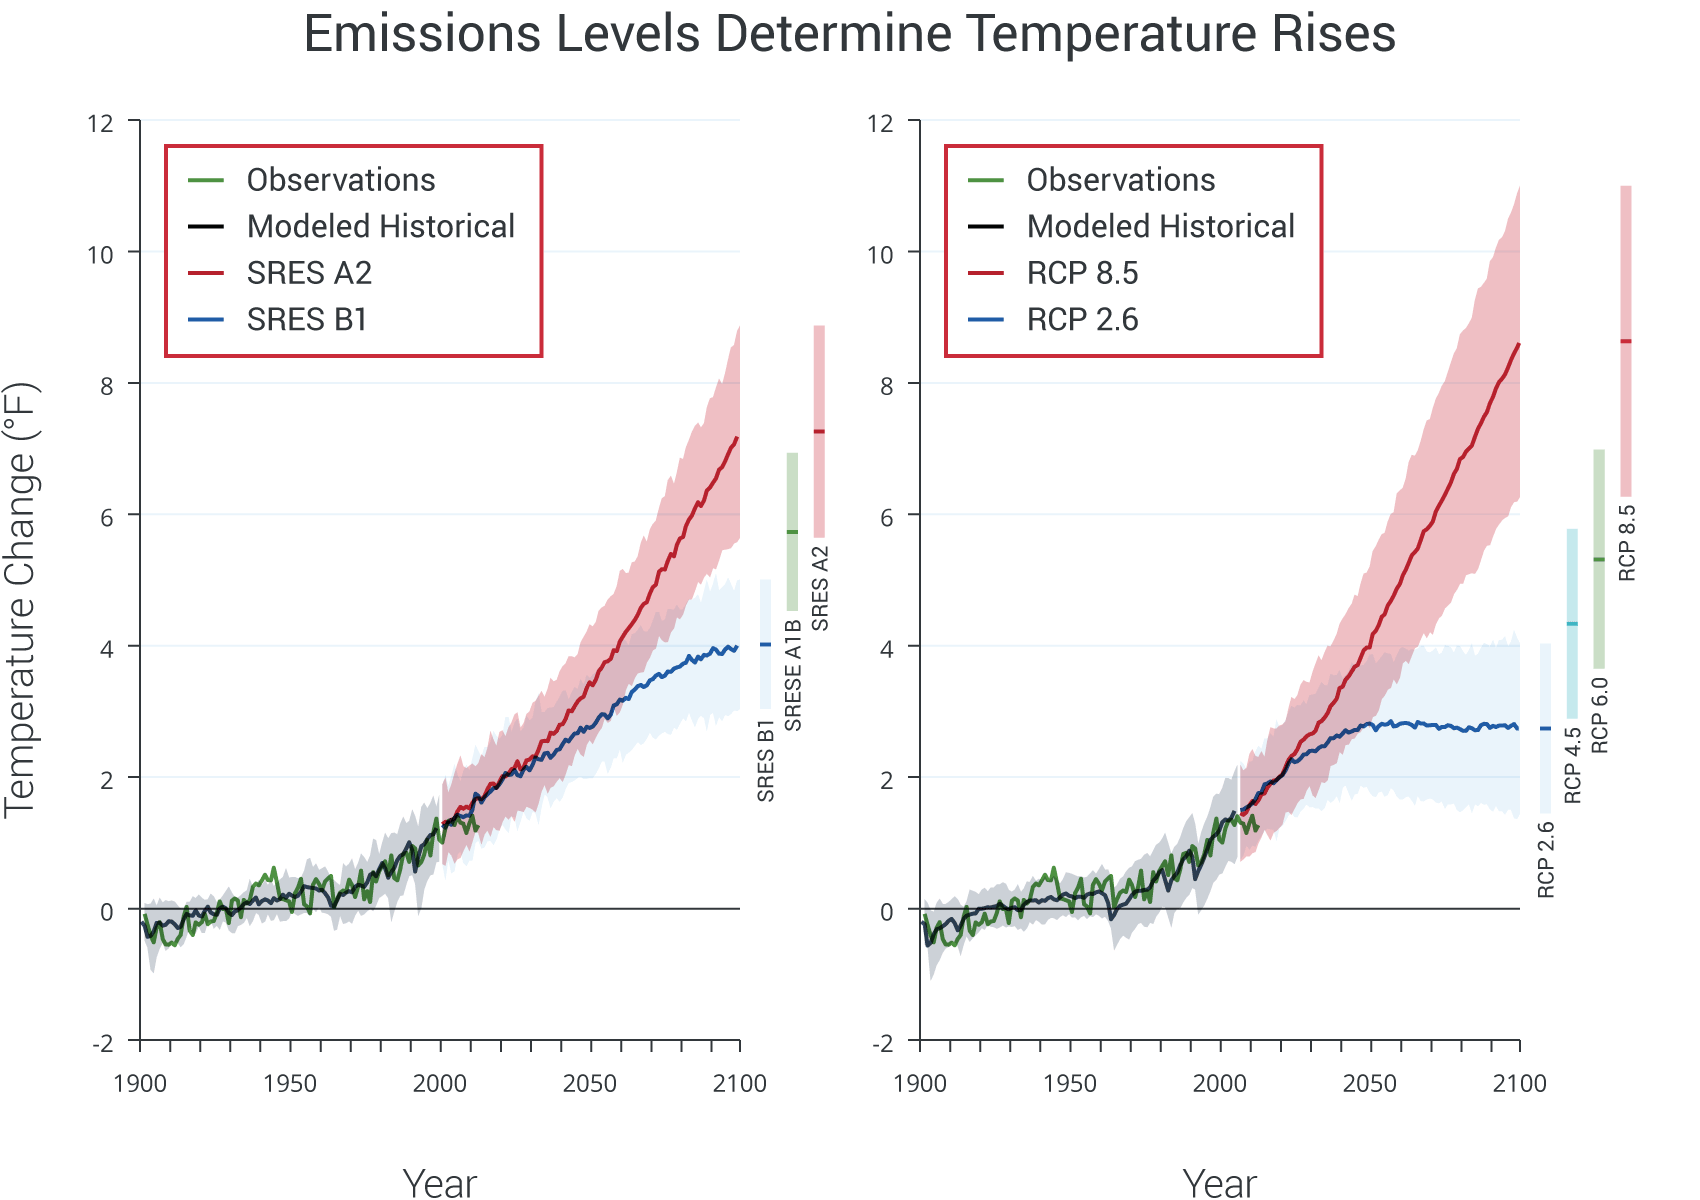 Emissions Levels Determine Temperature Rises